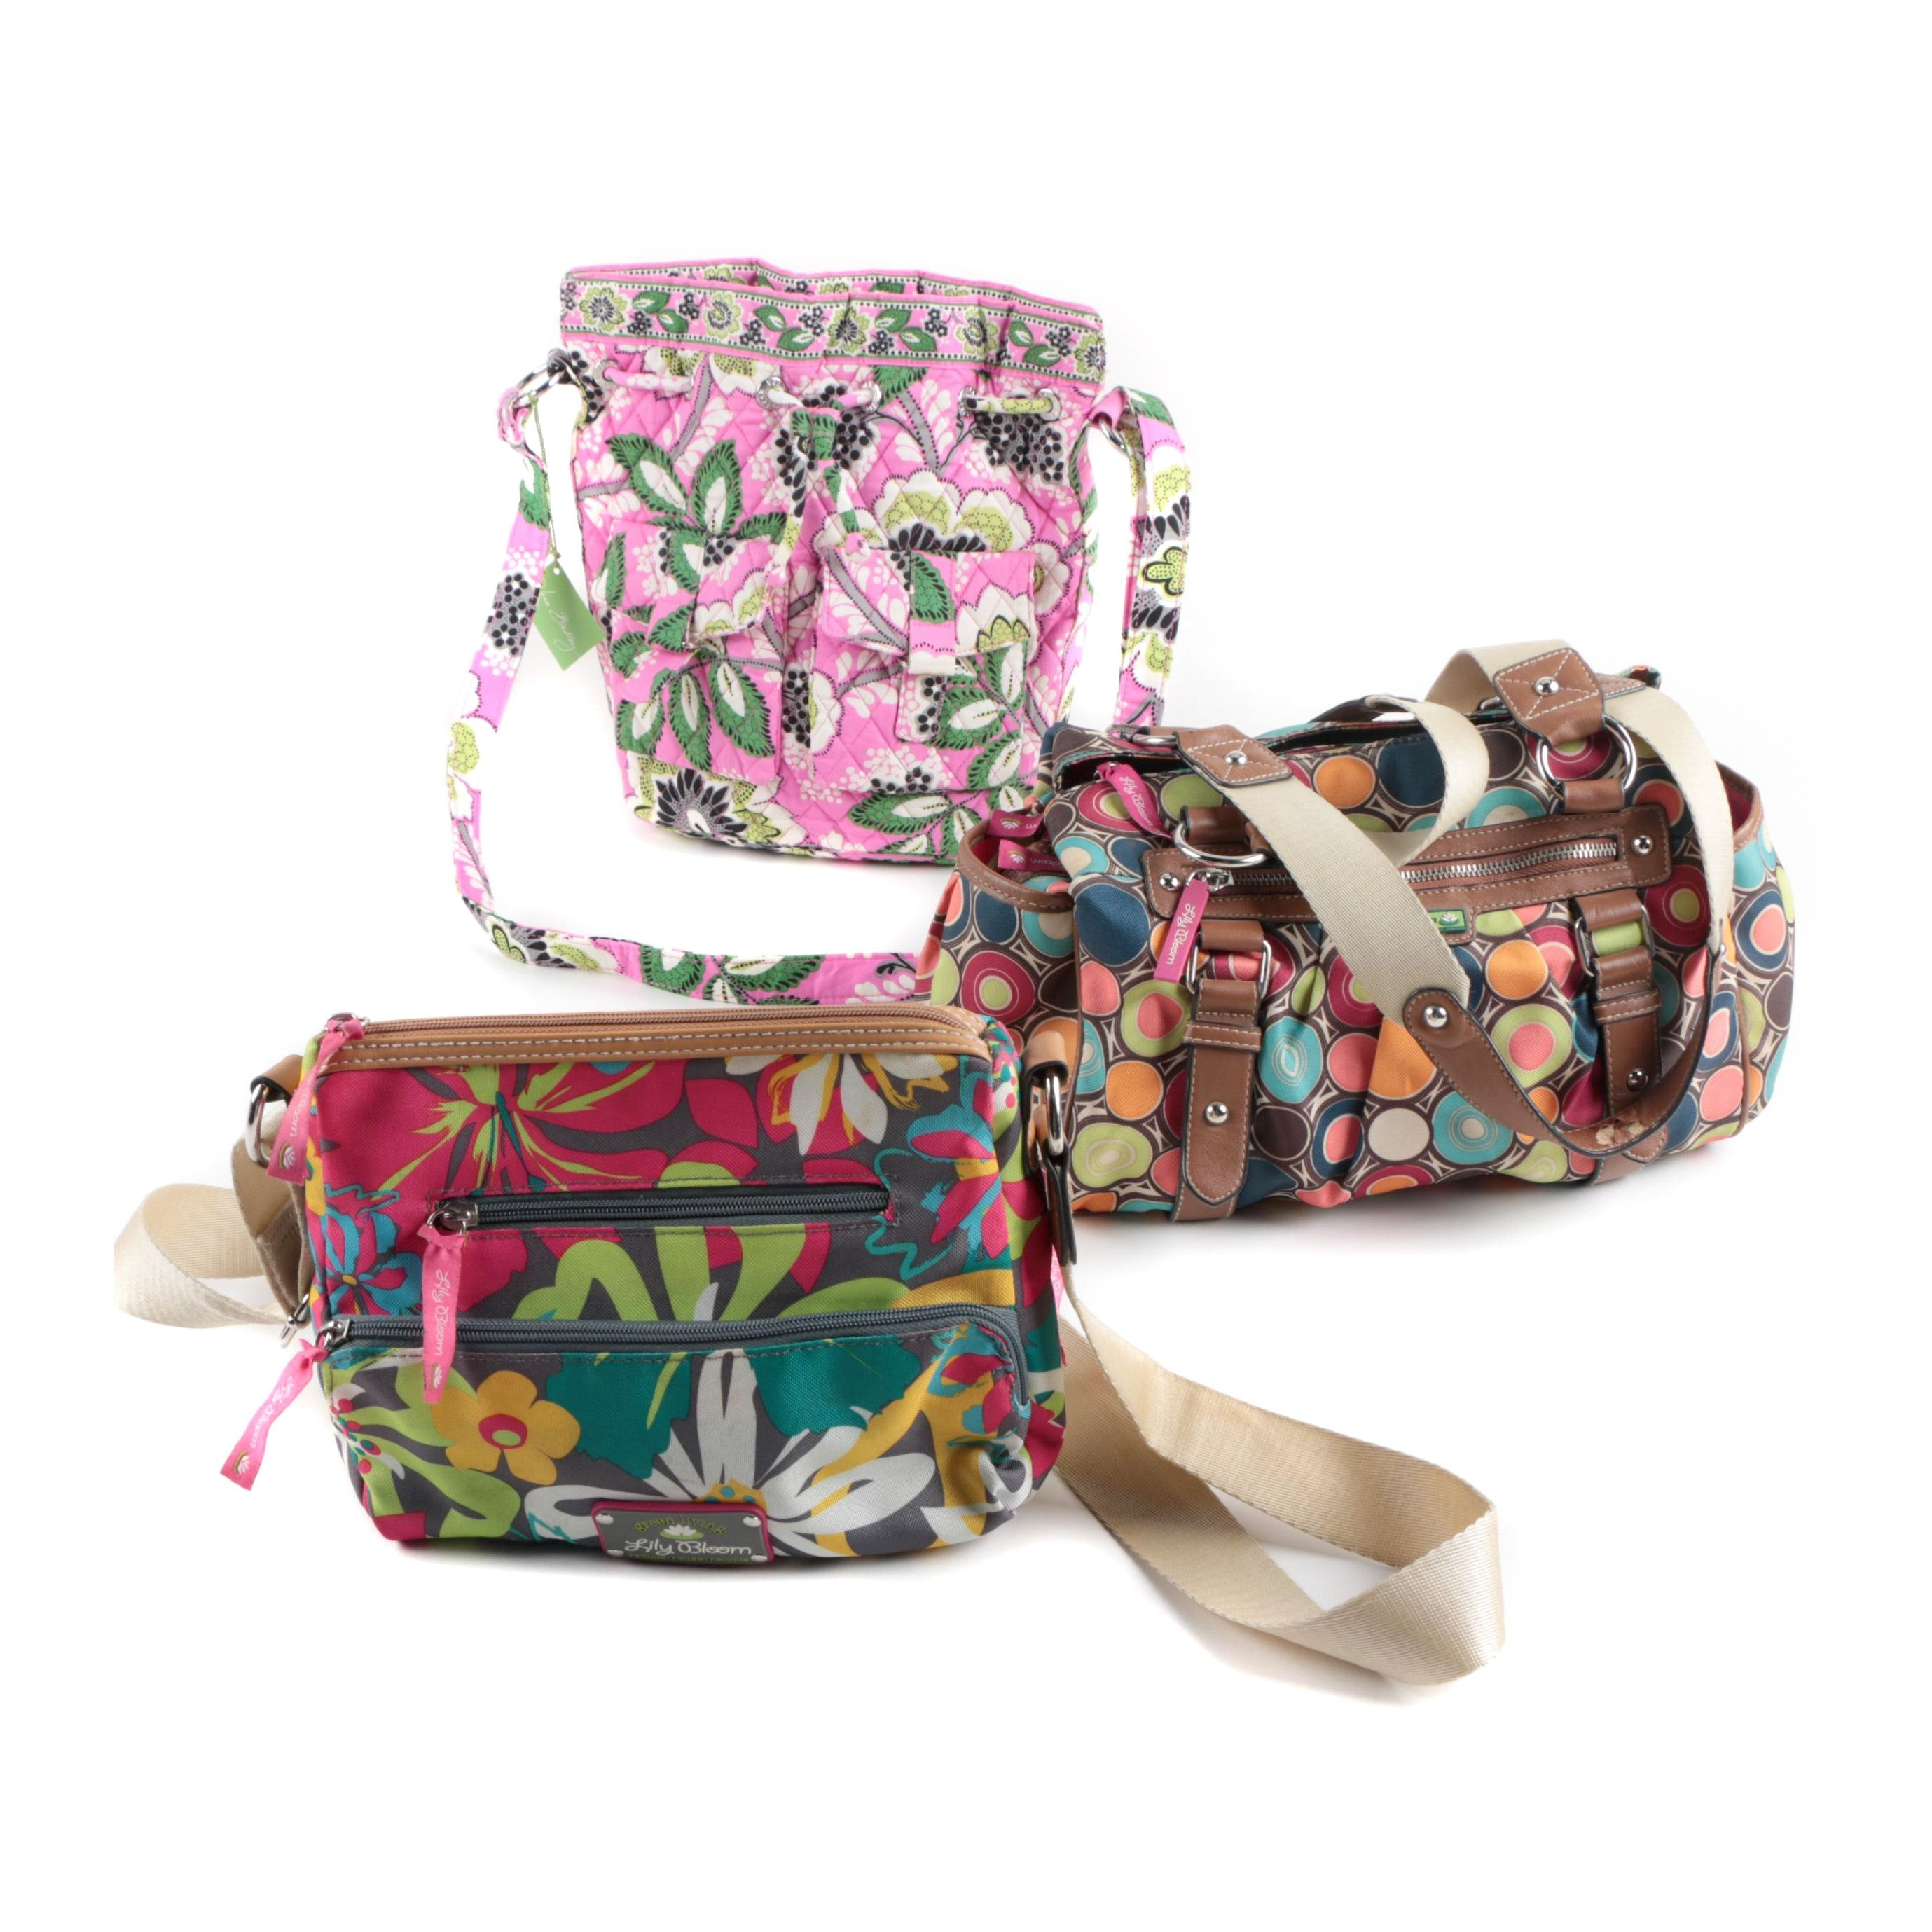 Vera Bradley and Lily Bloom Bags